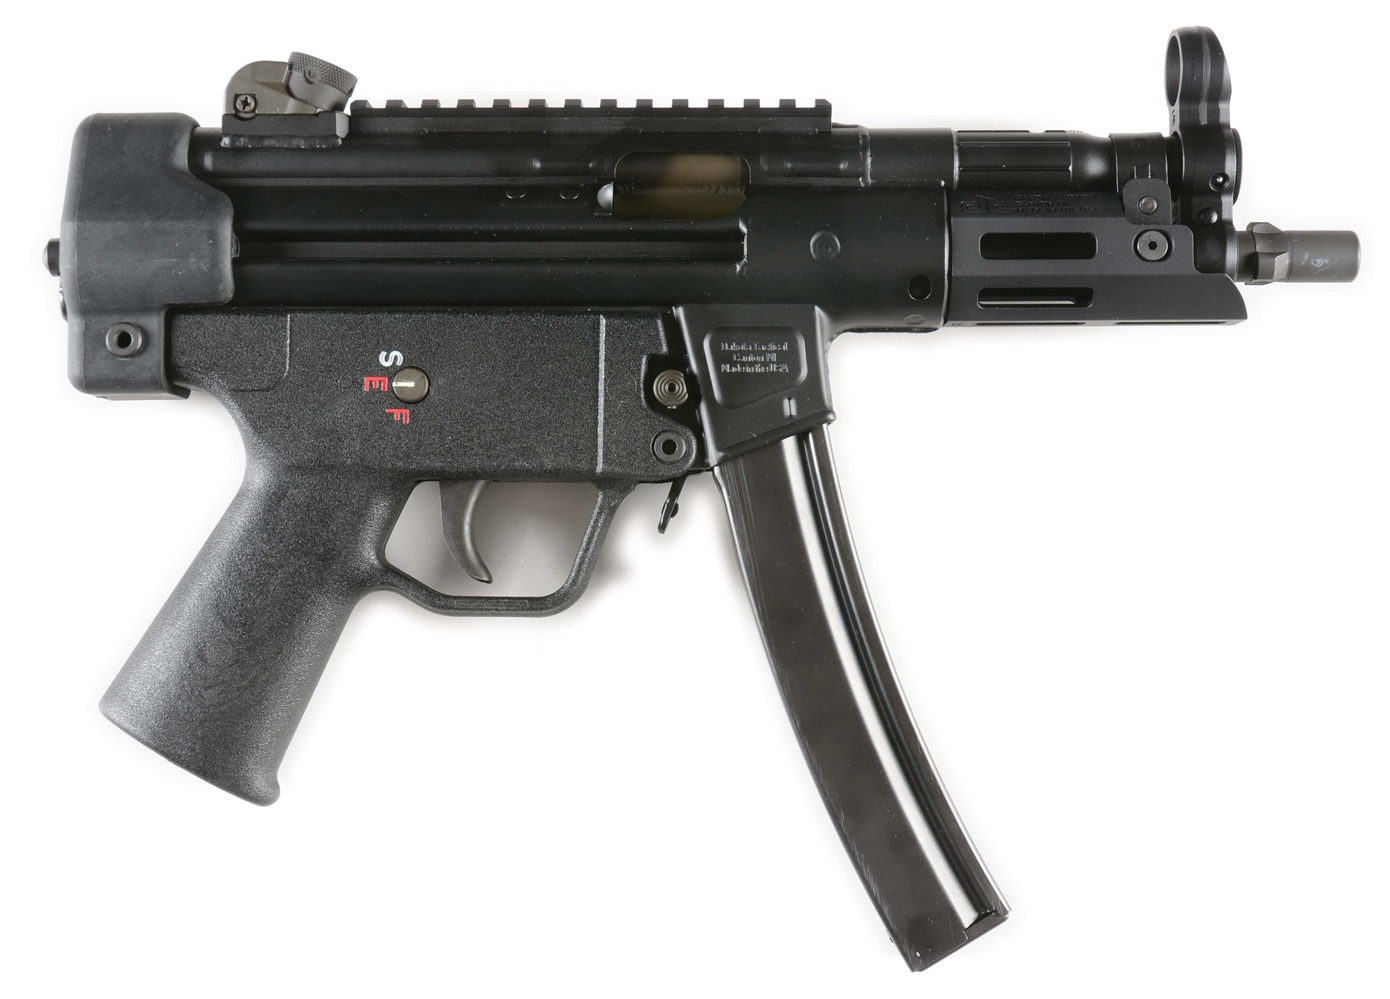 (M) DAKOTA TACTICAL D54R MP5 STYLE CLONE SEMI-AUTOMATIC PISTOL.